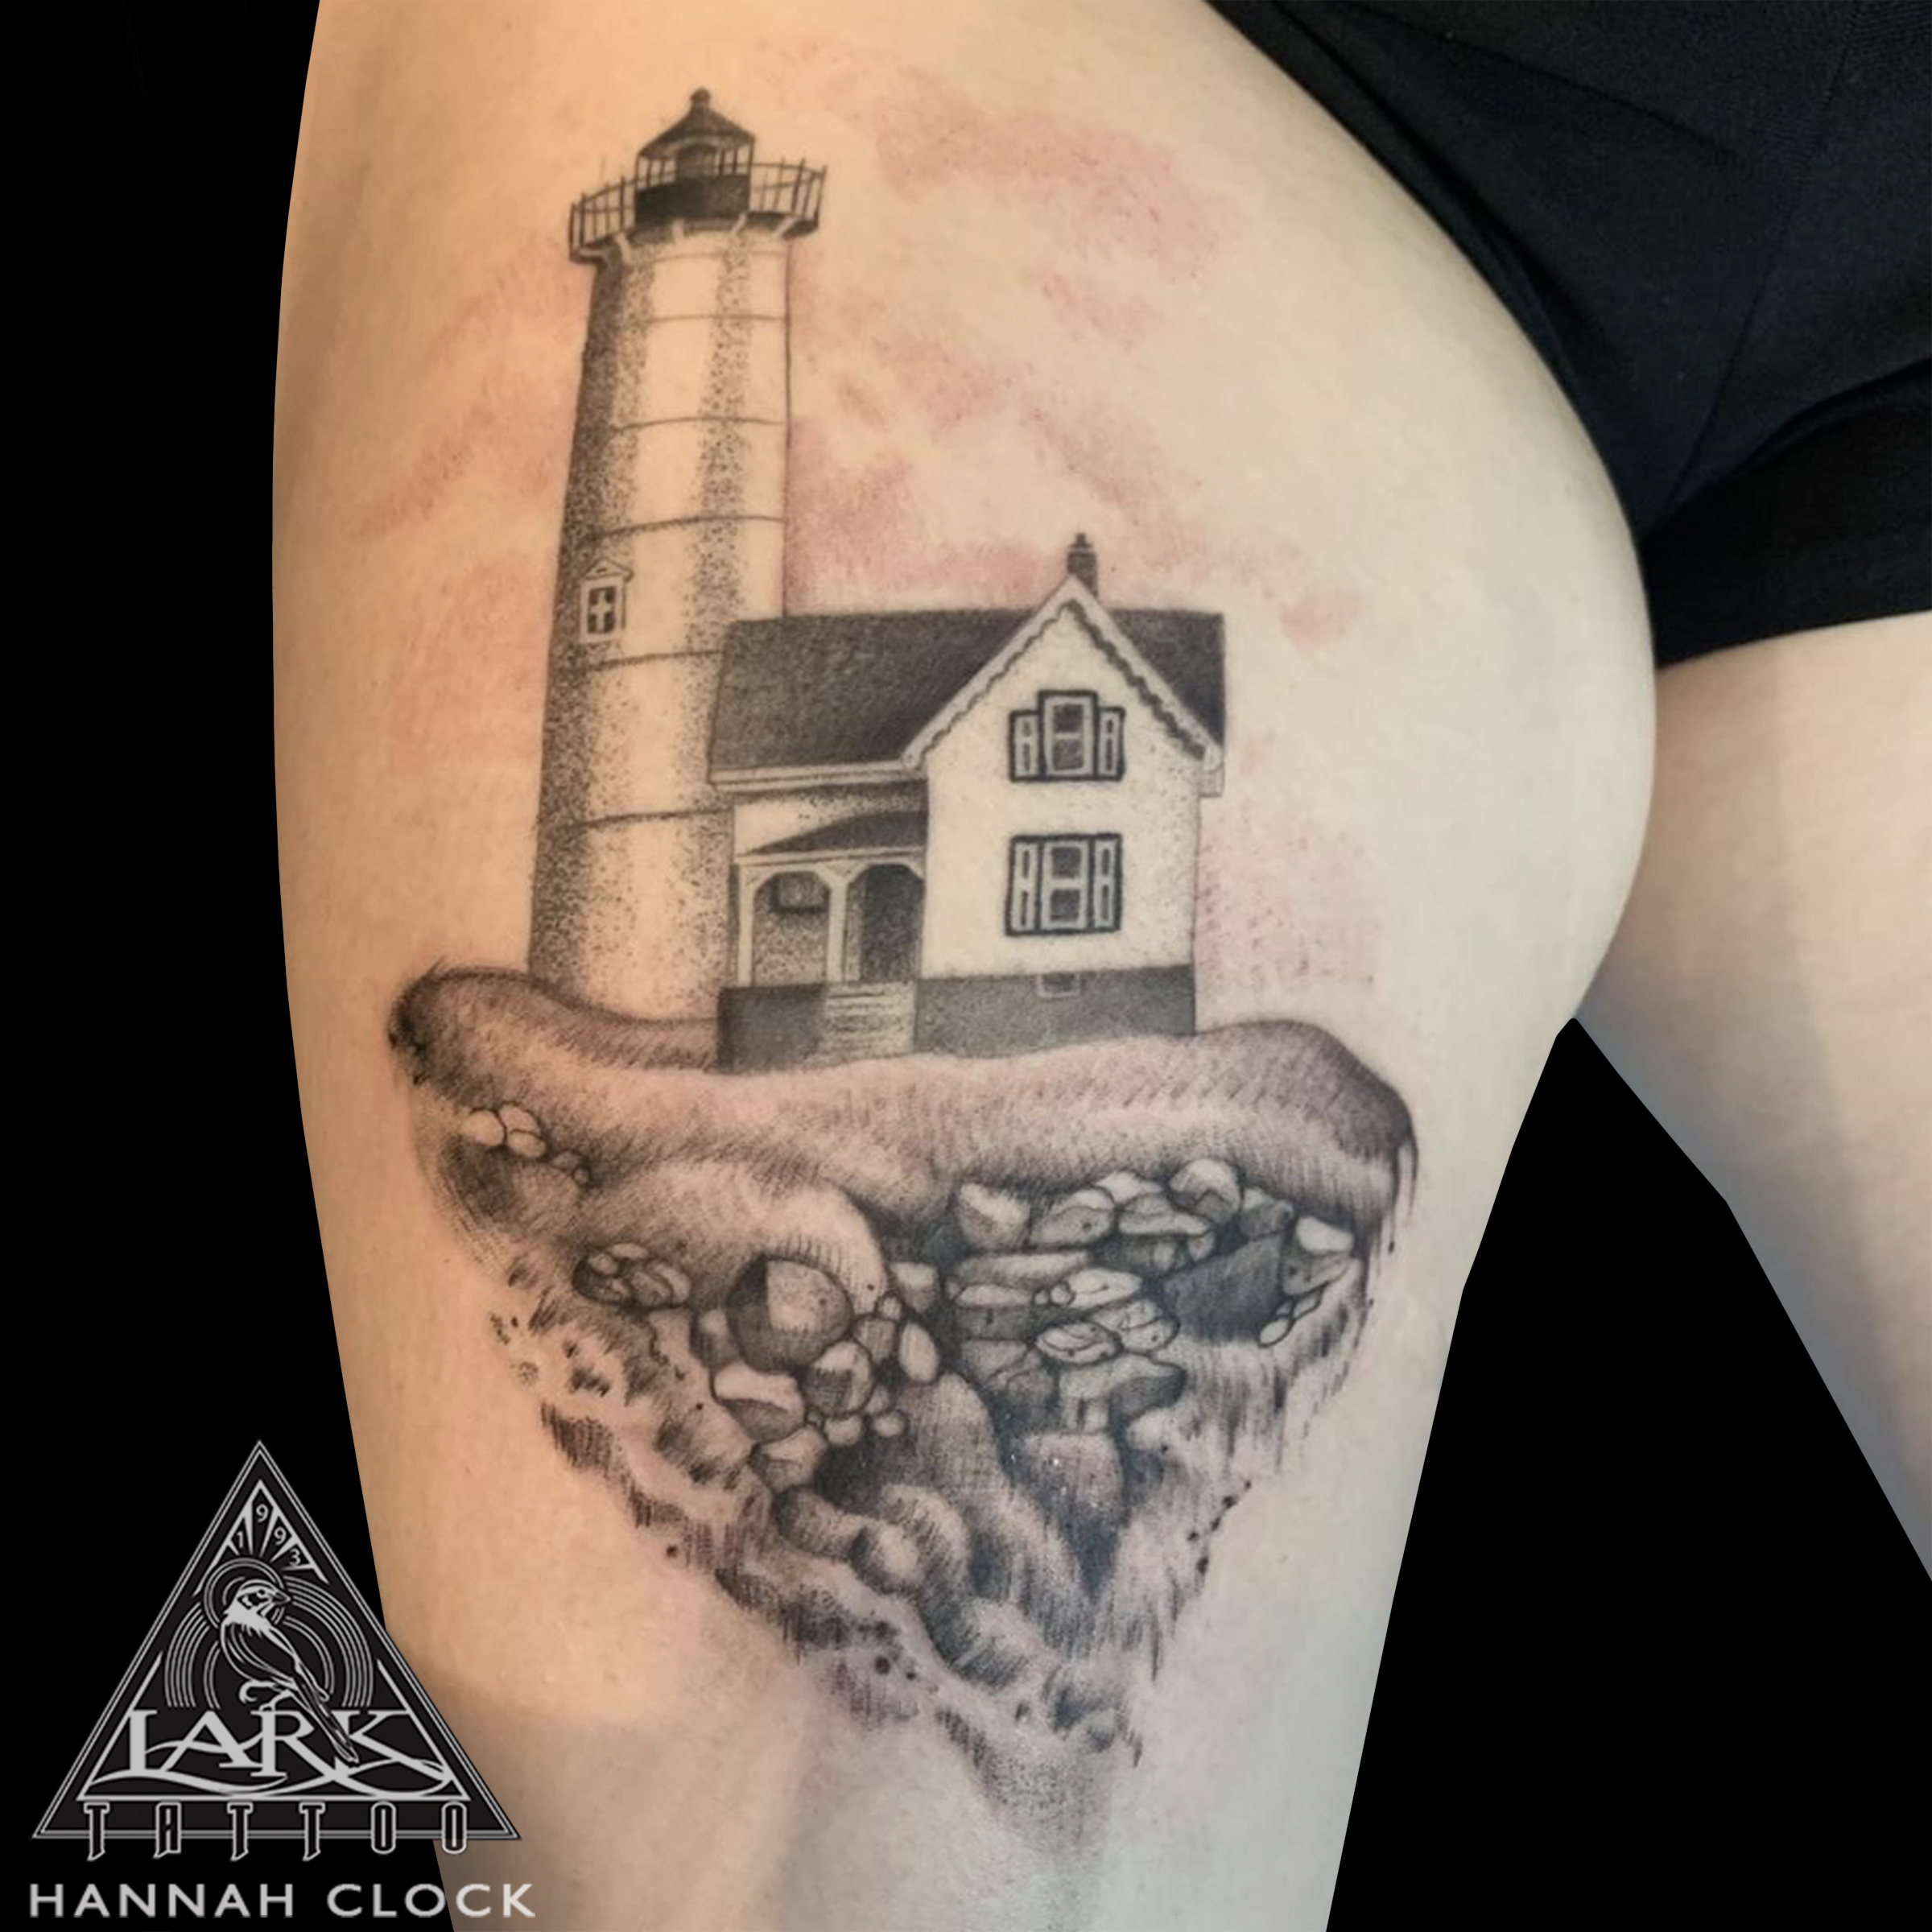 LarkTattoo, HannahClock, HannahClockTattoo, HannahClockLarkTattoo, FemaleTattooer, FemaleArtist, LadyTattooer, Lighthouse, LighthouseTattoo, ThighTattoo, BNG, BNGInkSociety, BNGTattoo, BlackAndGrey, BlackAndGreyTattoo, BlackAndGray, BlackAndGrayTattoo, Tattoo, Tattoos , TattooArtist, Tattoist, Tattooer, LongIslandTattooArtist, LongIslandTattooer, LongIslandTattoo, TattooOfTheDay, Tat, Tats, Tatts, Tatted, Inked, Ink, TattooInk, AmazingInk, AmazingTattoo, BodyArt, LarkTattooWestbury, Westbury, LongIsland, NY, NewYork, USA, Art, Tattedup, InkedUp, LarkTattoos